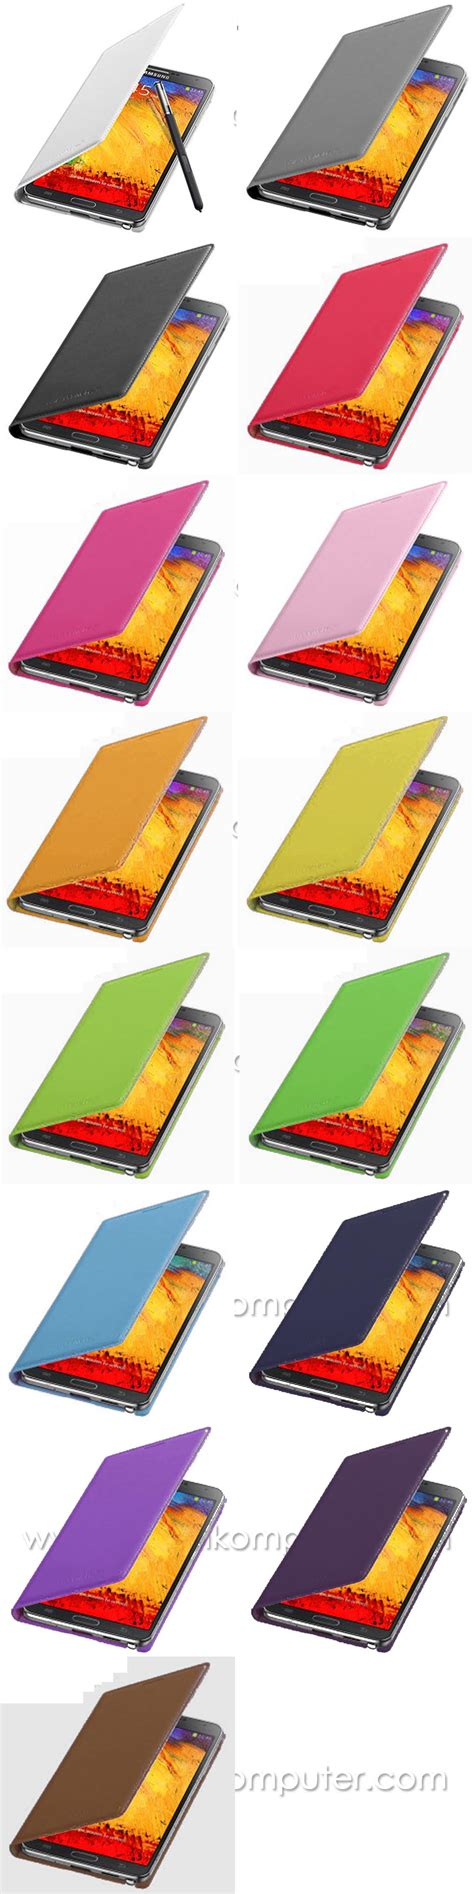 areahp flip cover for samsung galaxy note3 n9000